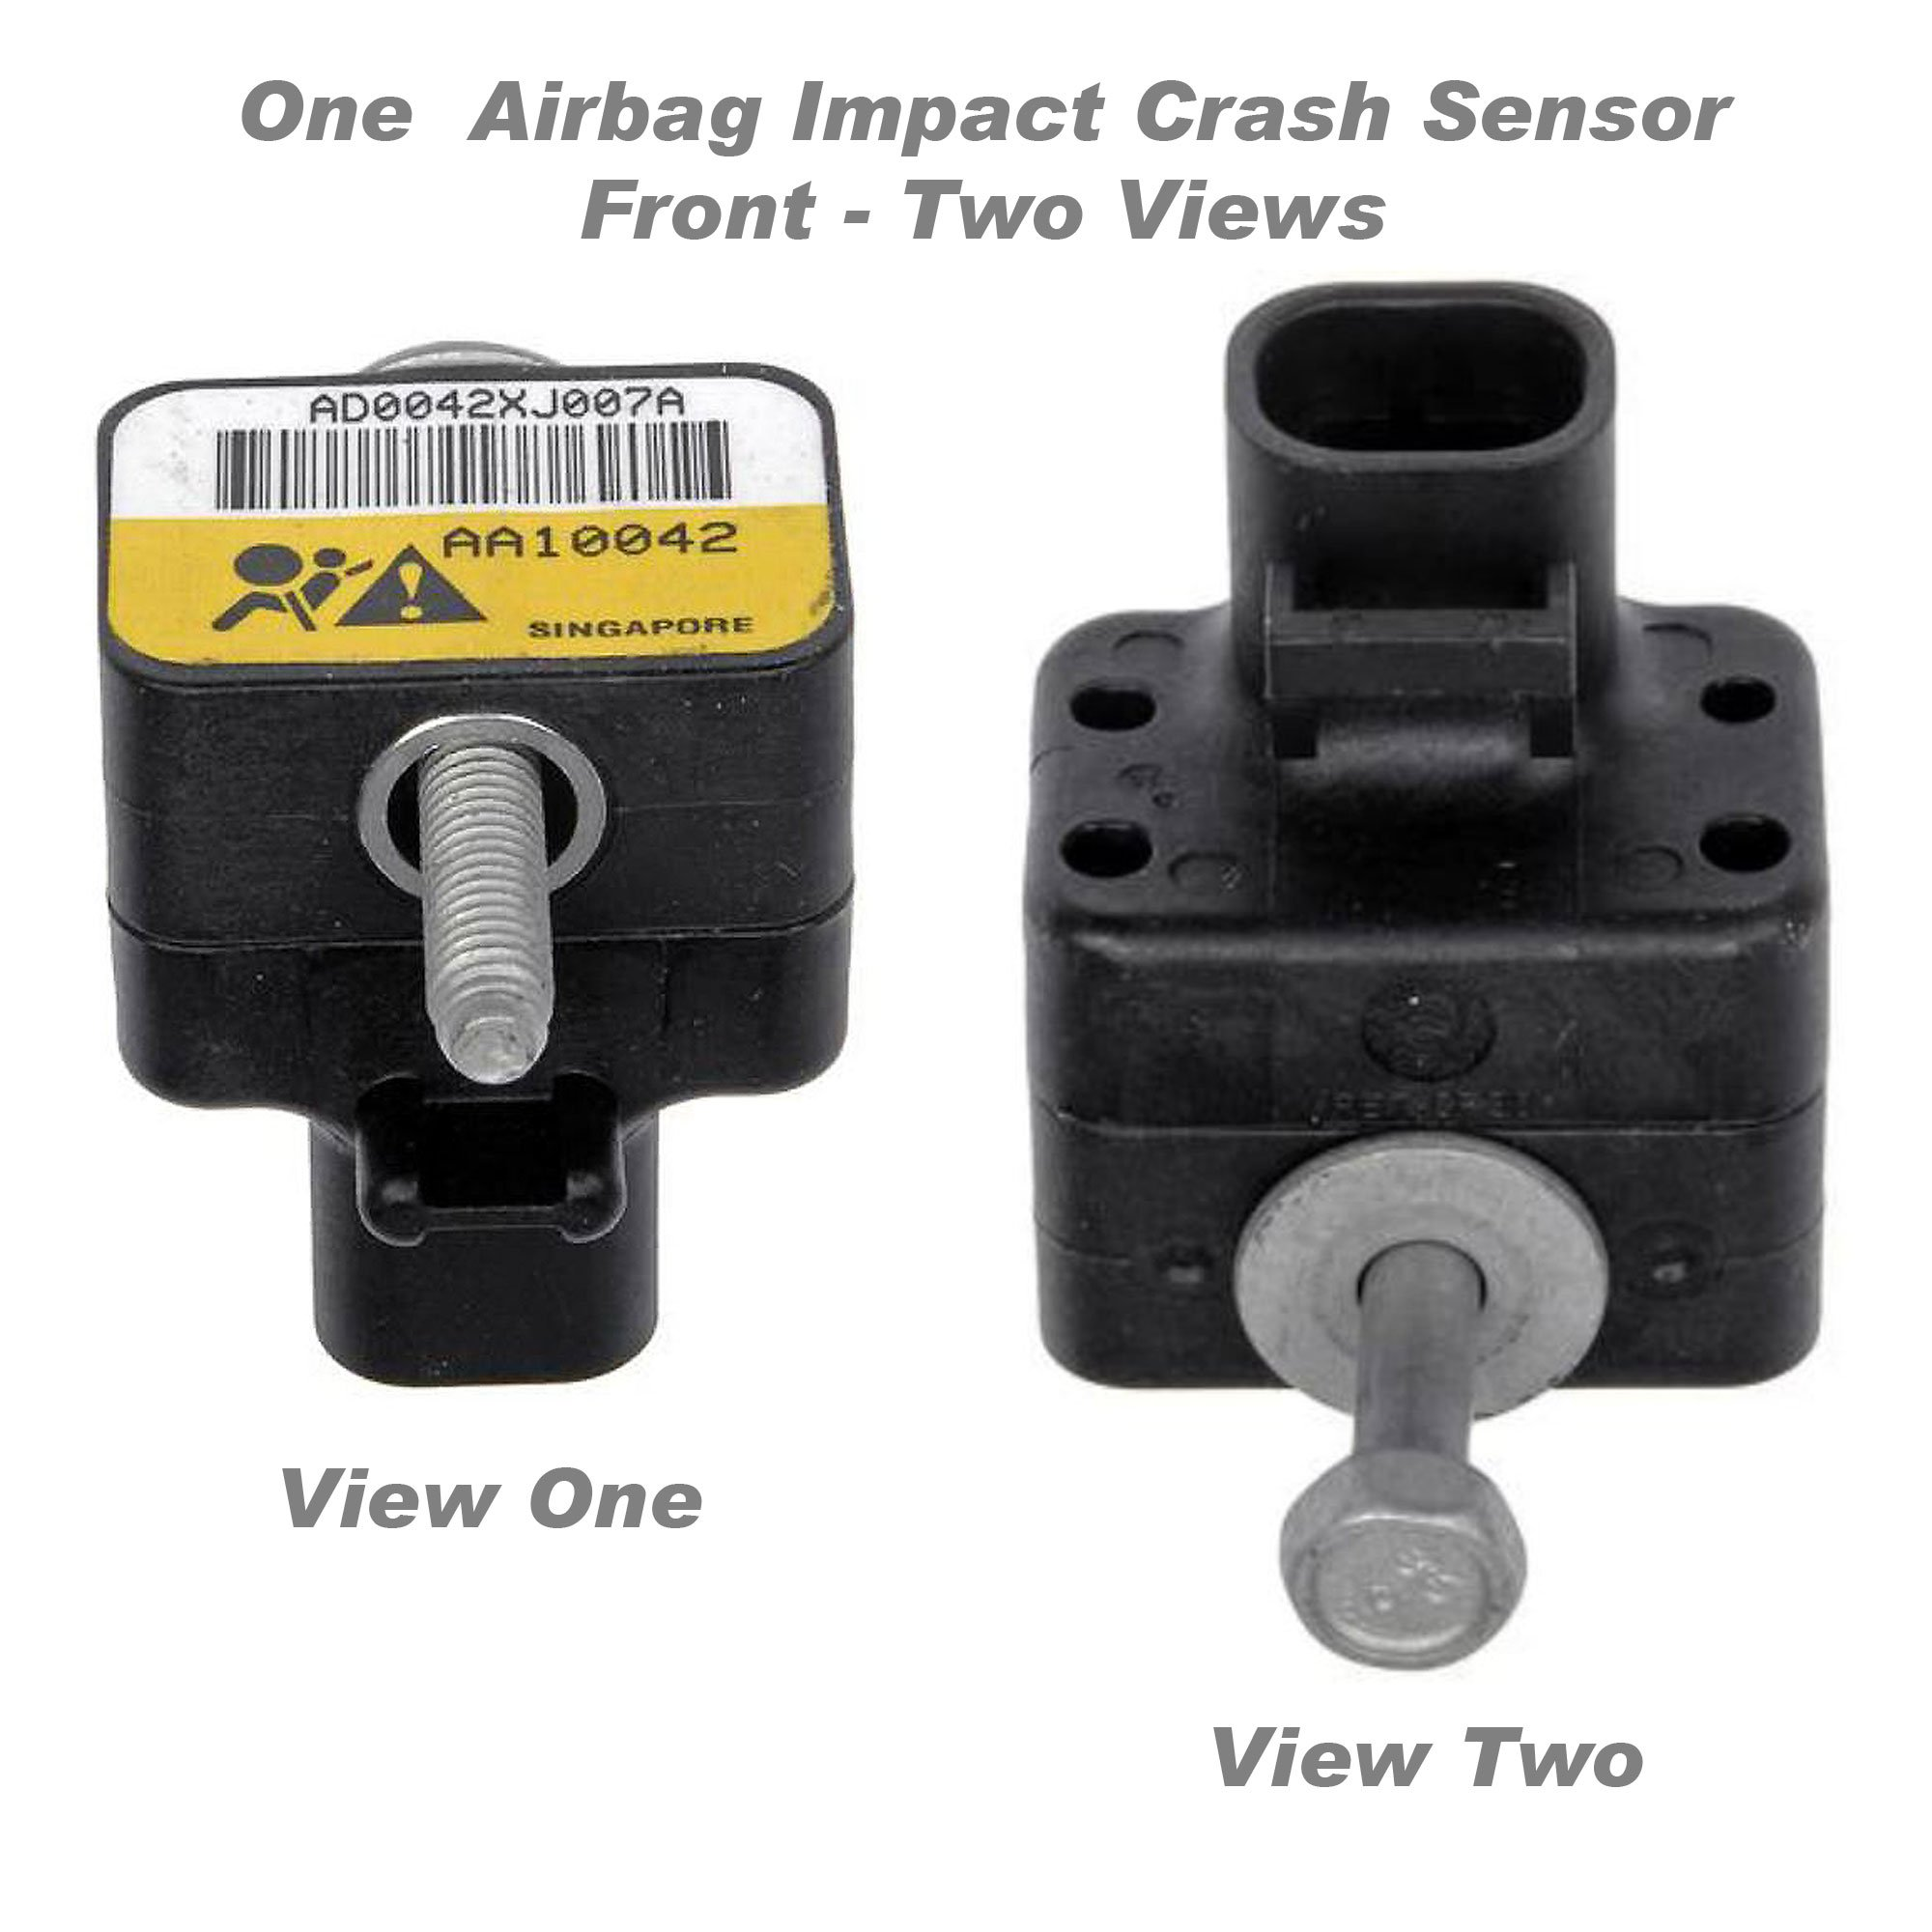 APDTY 601325 Airbag Impact Crash Sensor Fits Front Left or Right Models With RPO Code HVY 2001-2002 Chevrolet Silverado or GMC Sierra Pickup (Radiator Support Mounted; Replaces GM 15070580) by APDTY